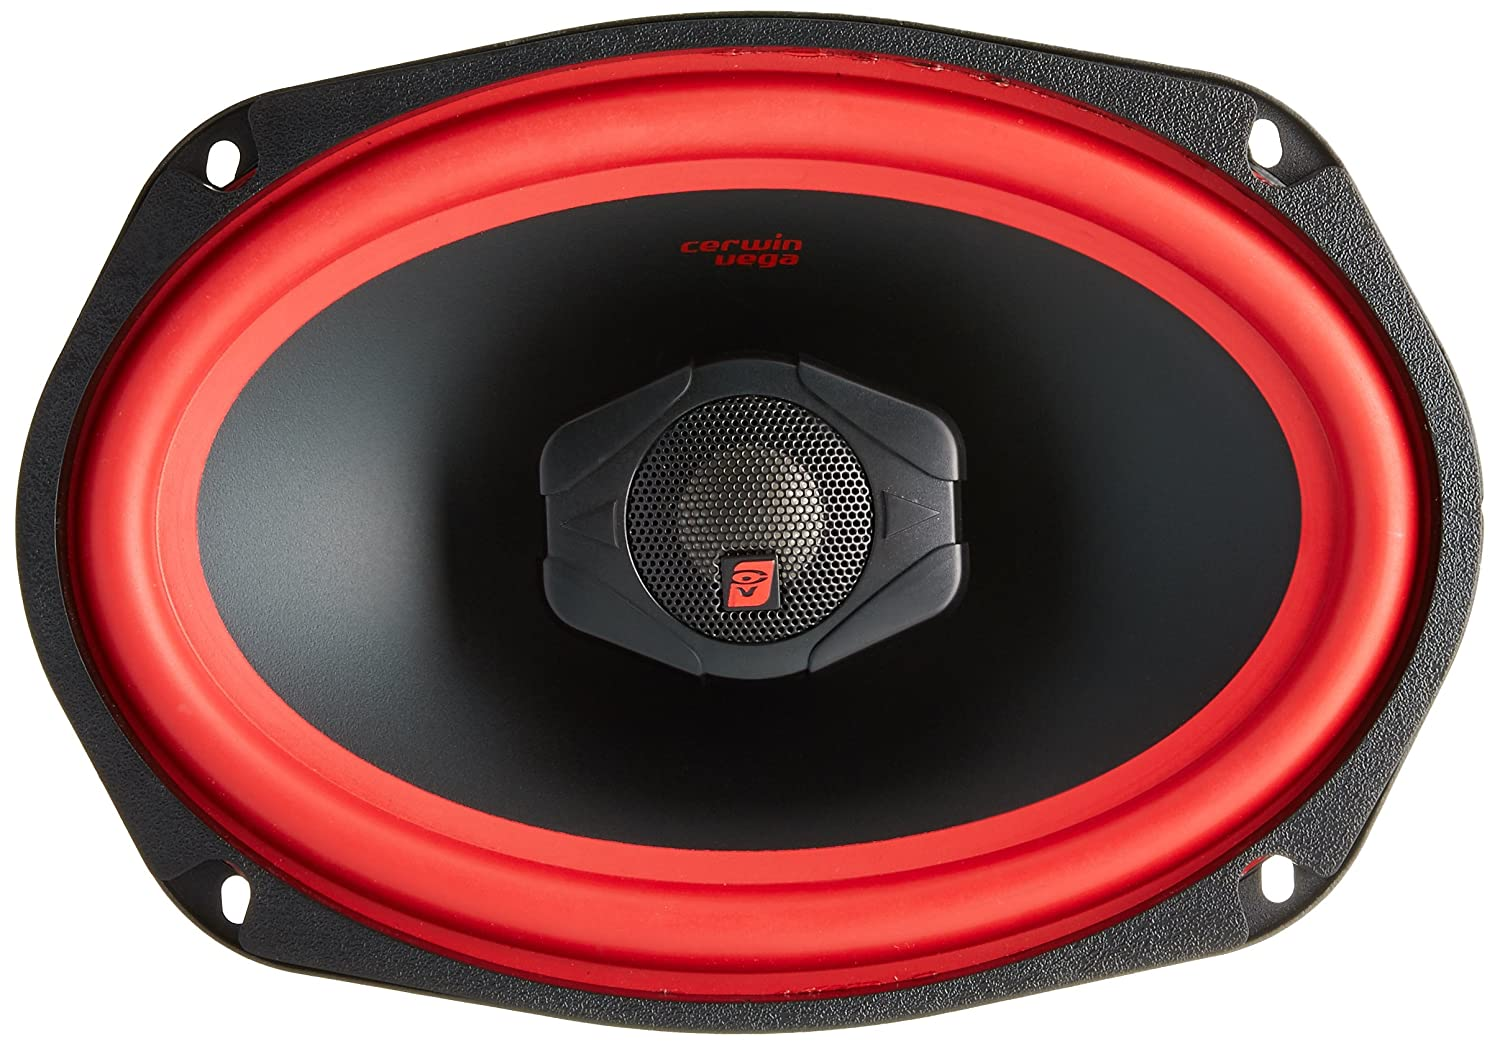 CERWIN VEGA V469 6-Inch x 9-Inch 500 Watts Max/100Watts RMS Power Handling 2-Way Coaxial Speaker Set